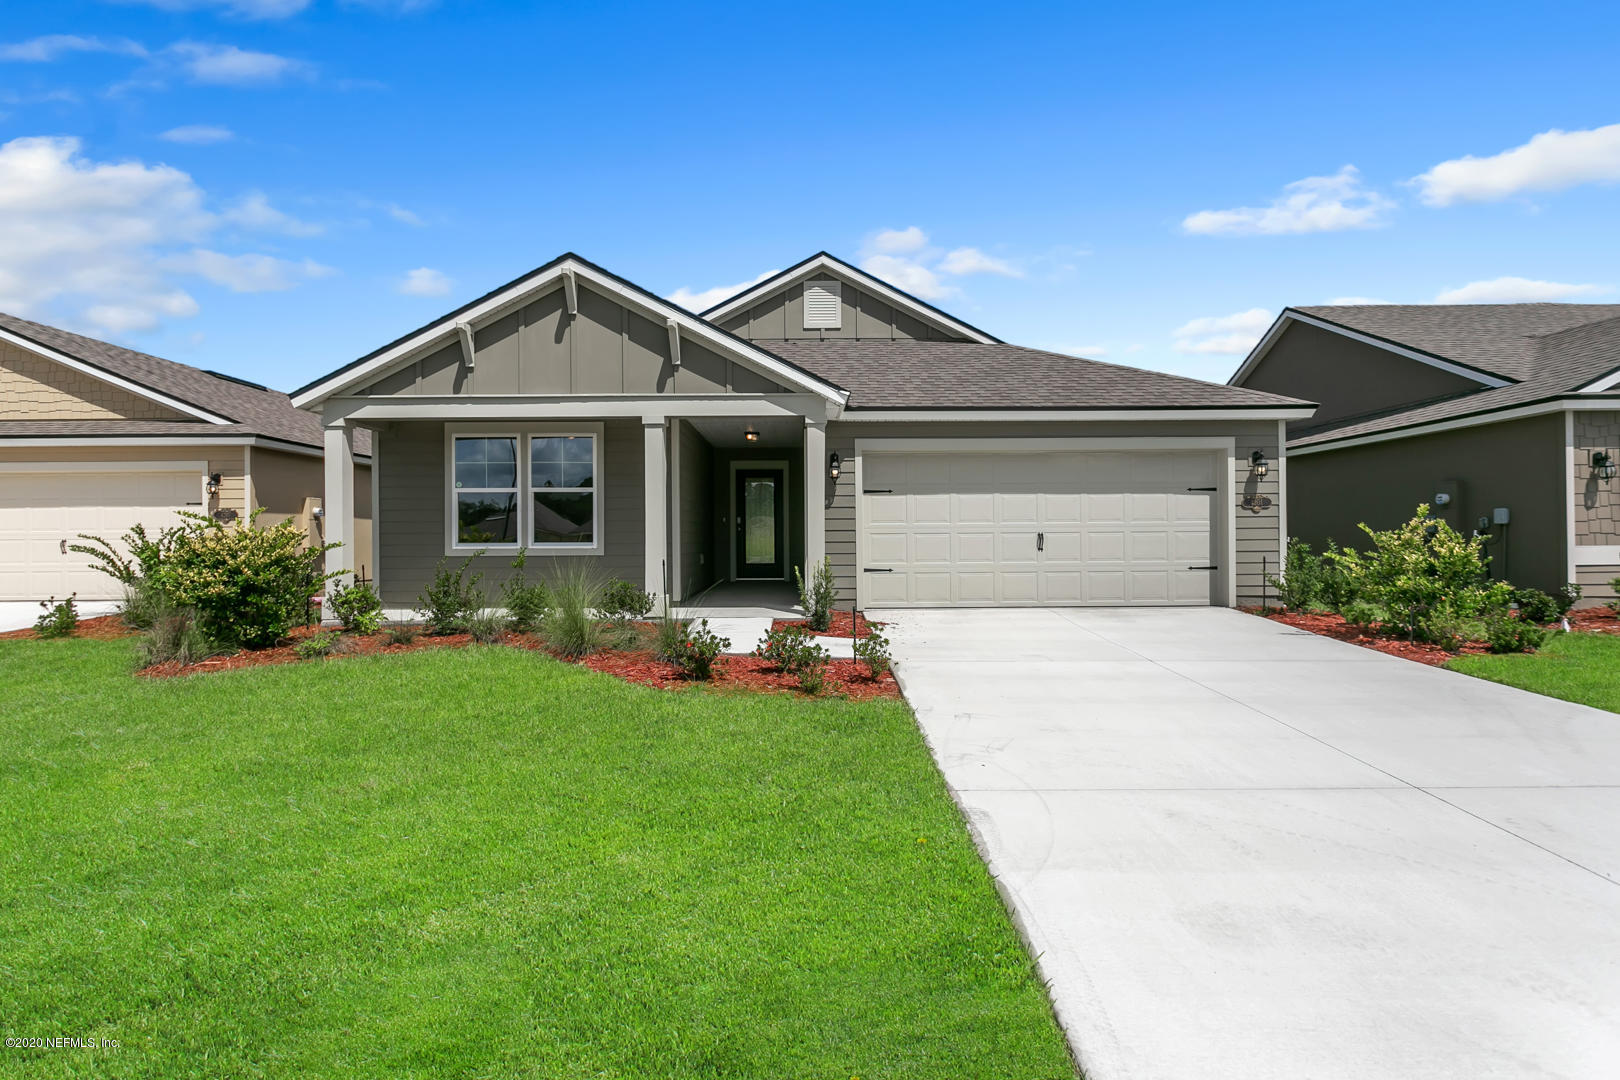 4301 GREEN RIVER, MIDDLEBURG, FLORIDA 32068, 4 Bedrooms Bedrooms, ,2 BathroomsBathrooms,Residential,For sale,GREEN RIVER,1046299